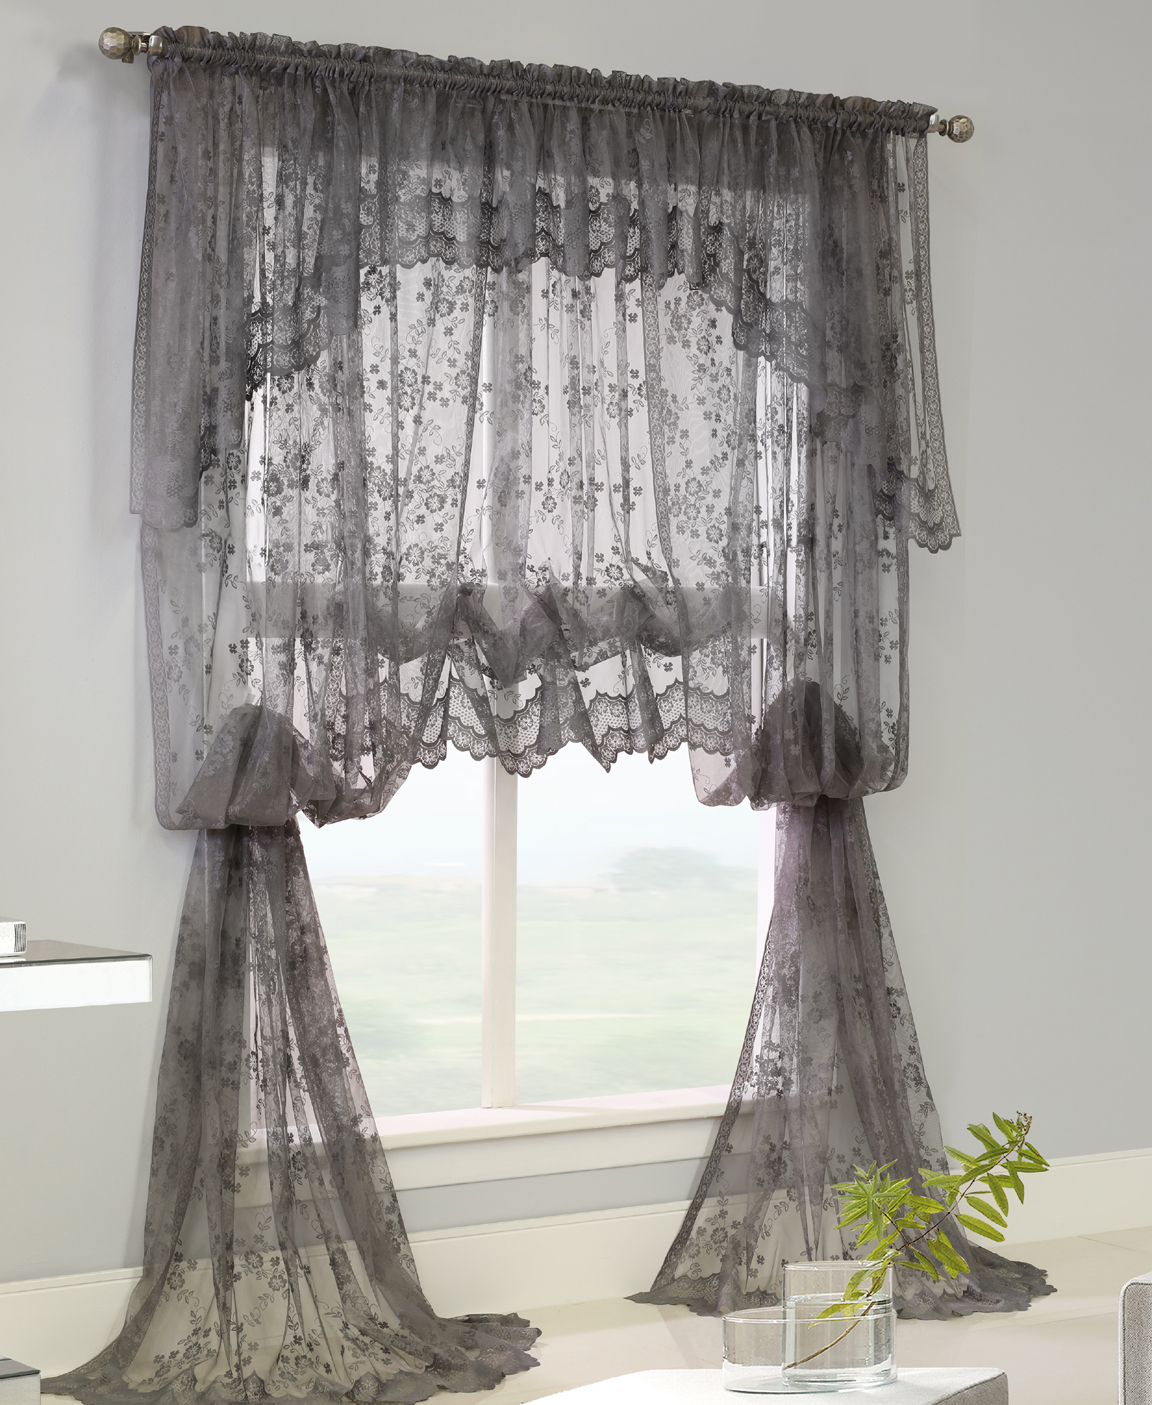 classic curtains in valance lace panels home for best decor windows treatments window sheer curtain valances